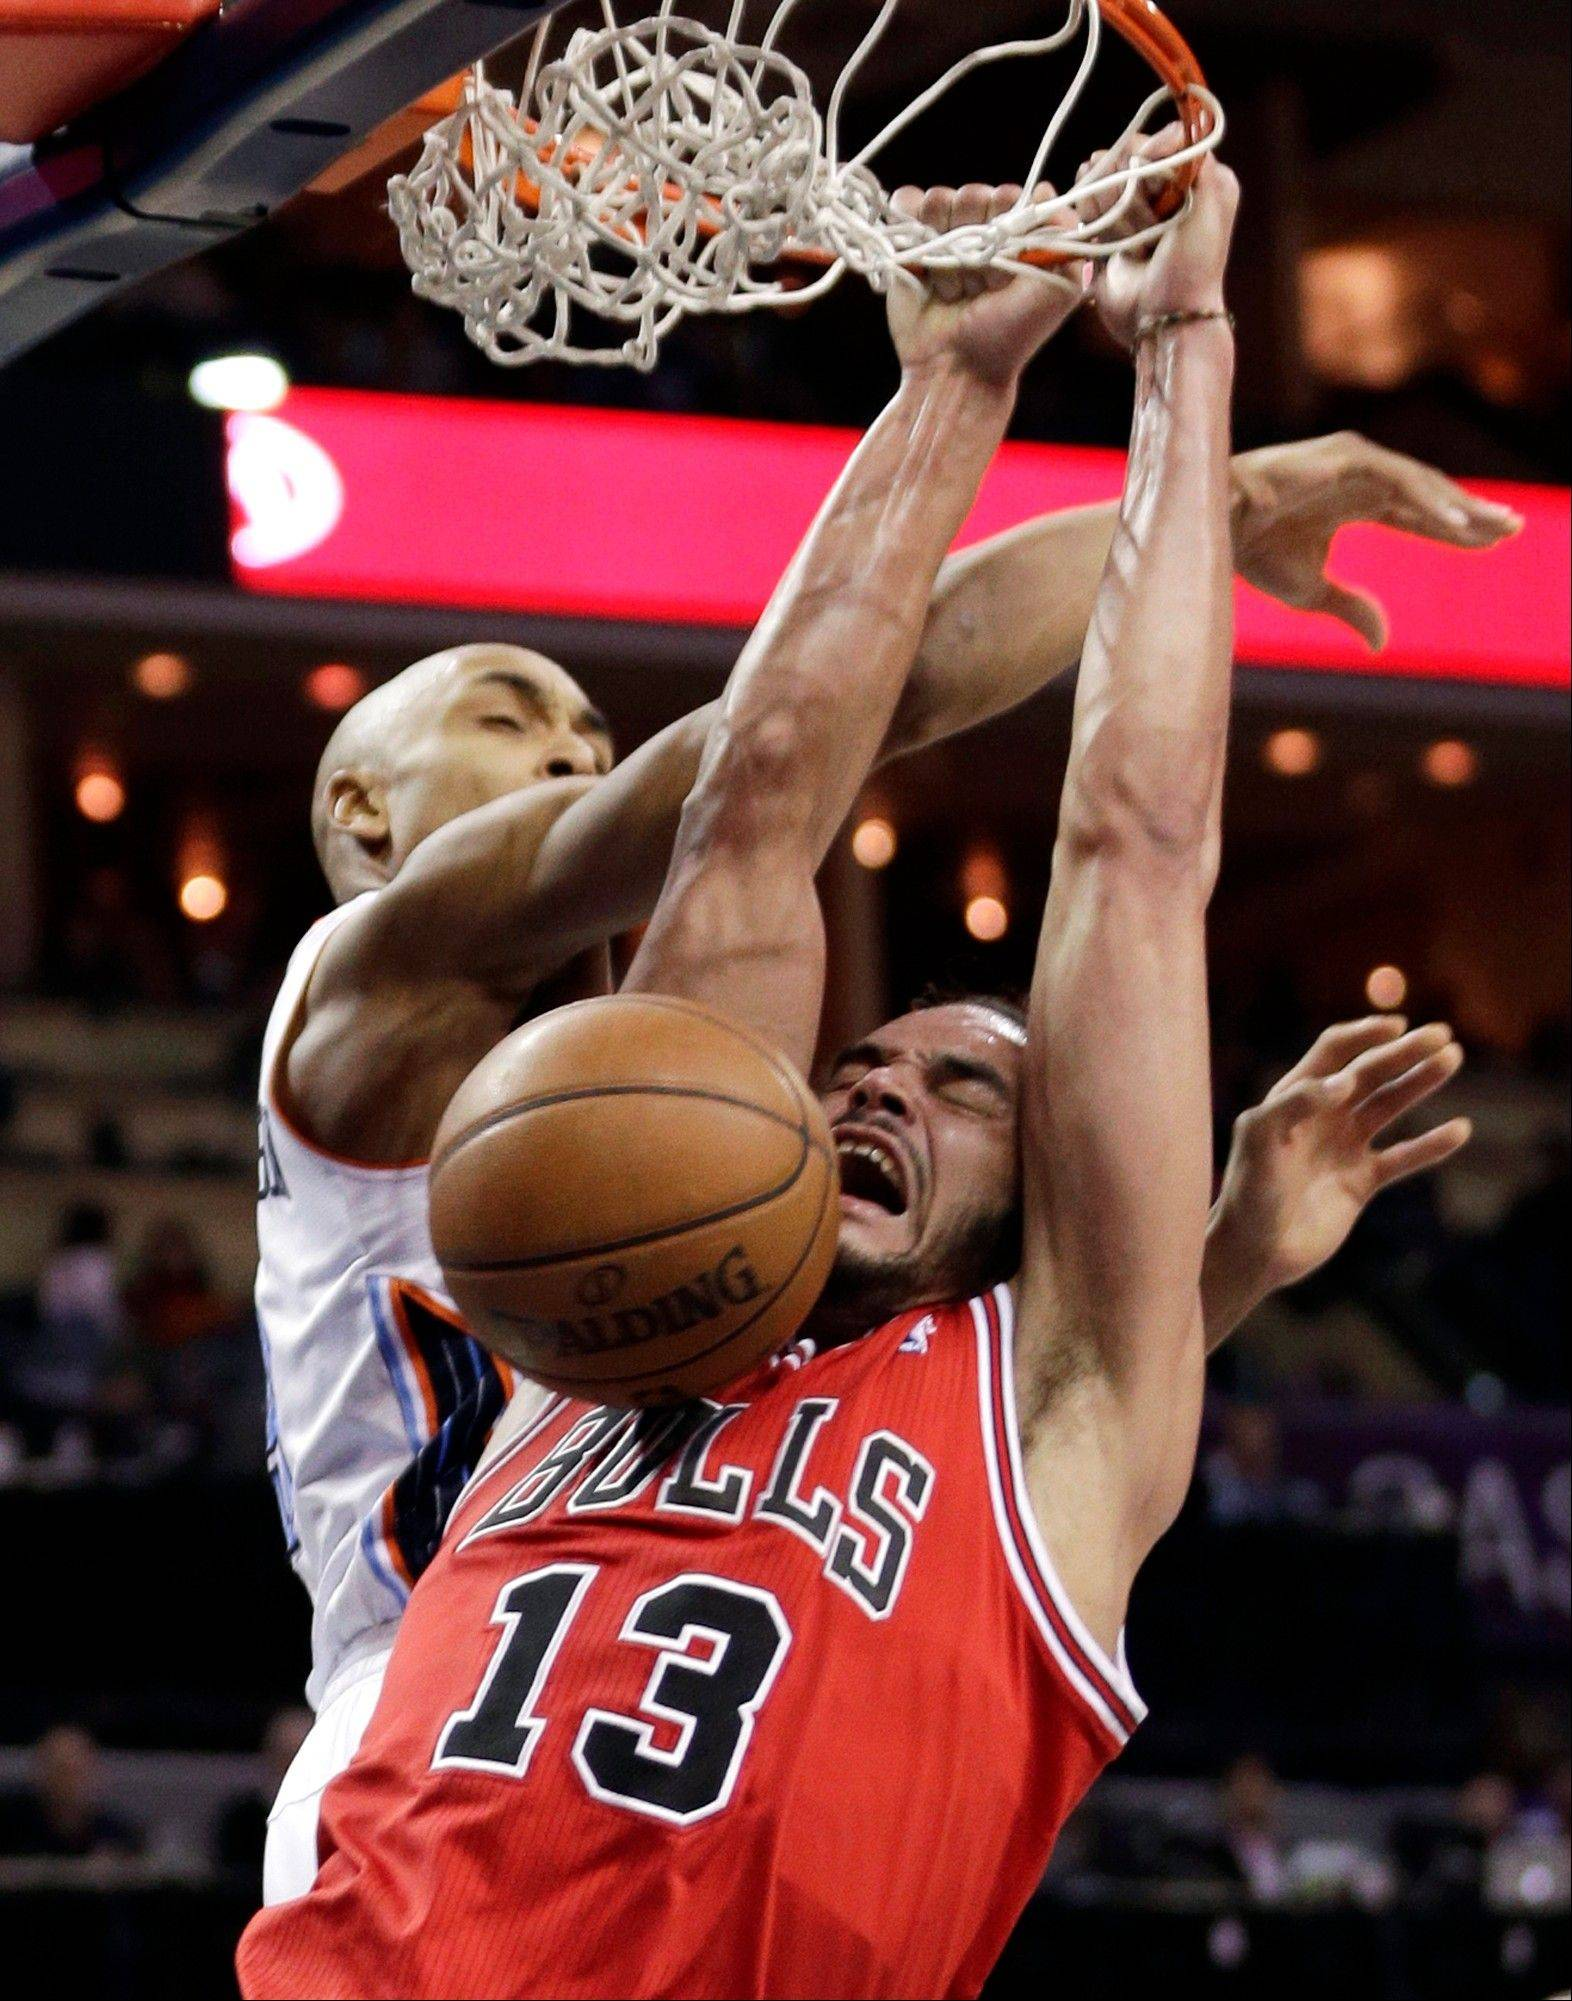 With no all-star centers, does Bulls' Noah have a shot?